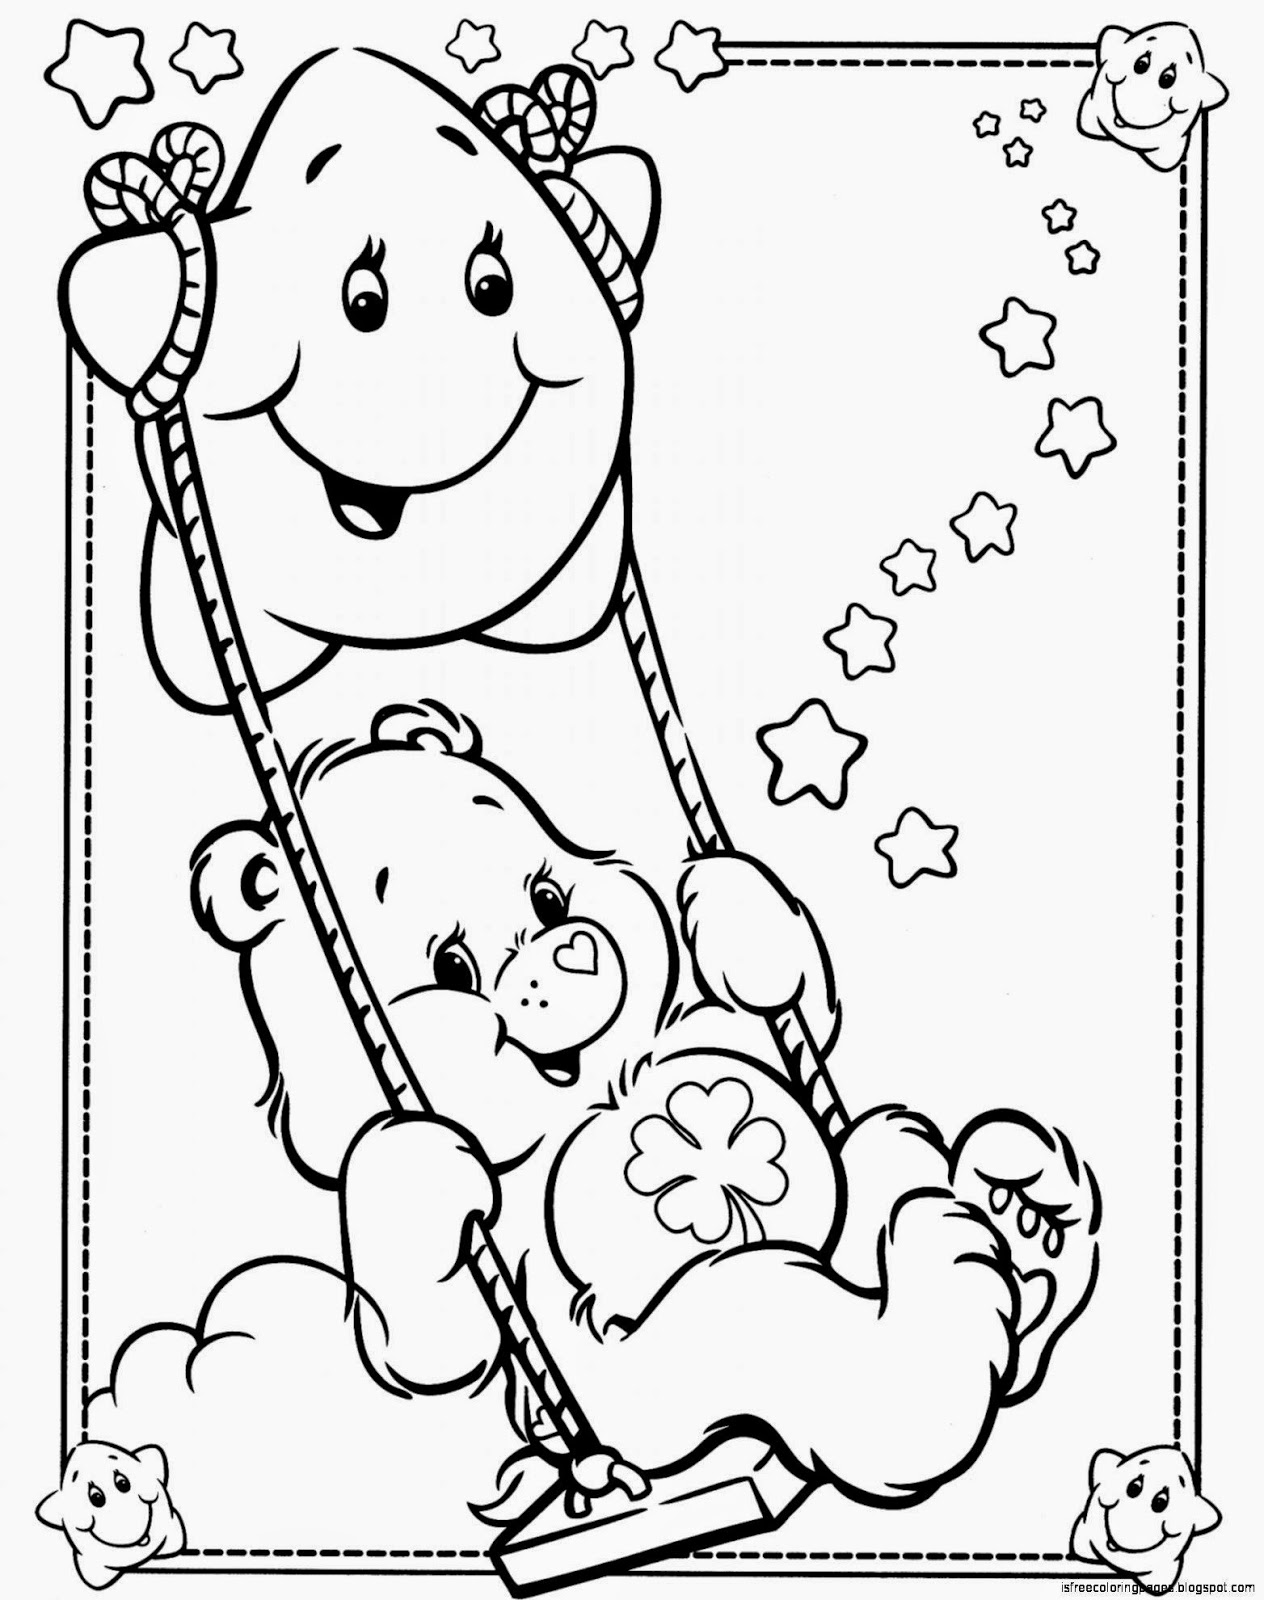 coloring pages of bears free printable care bear coloring pages for kids pages of bears coloring